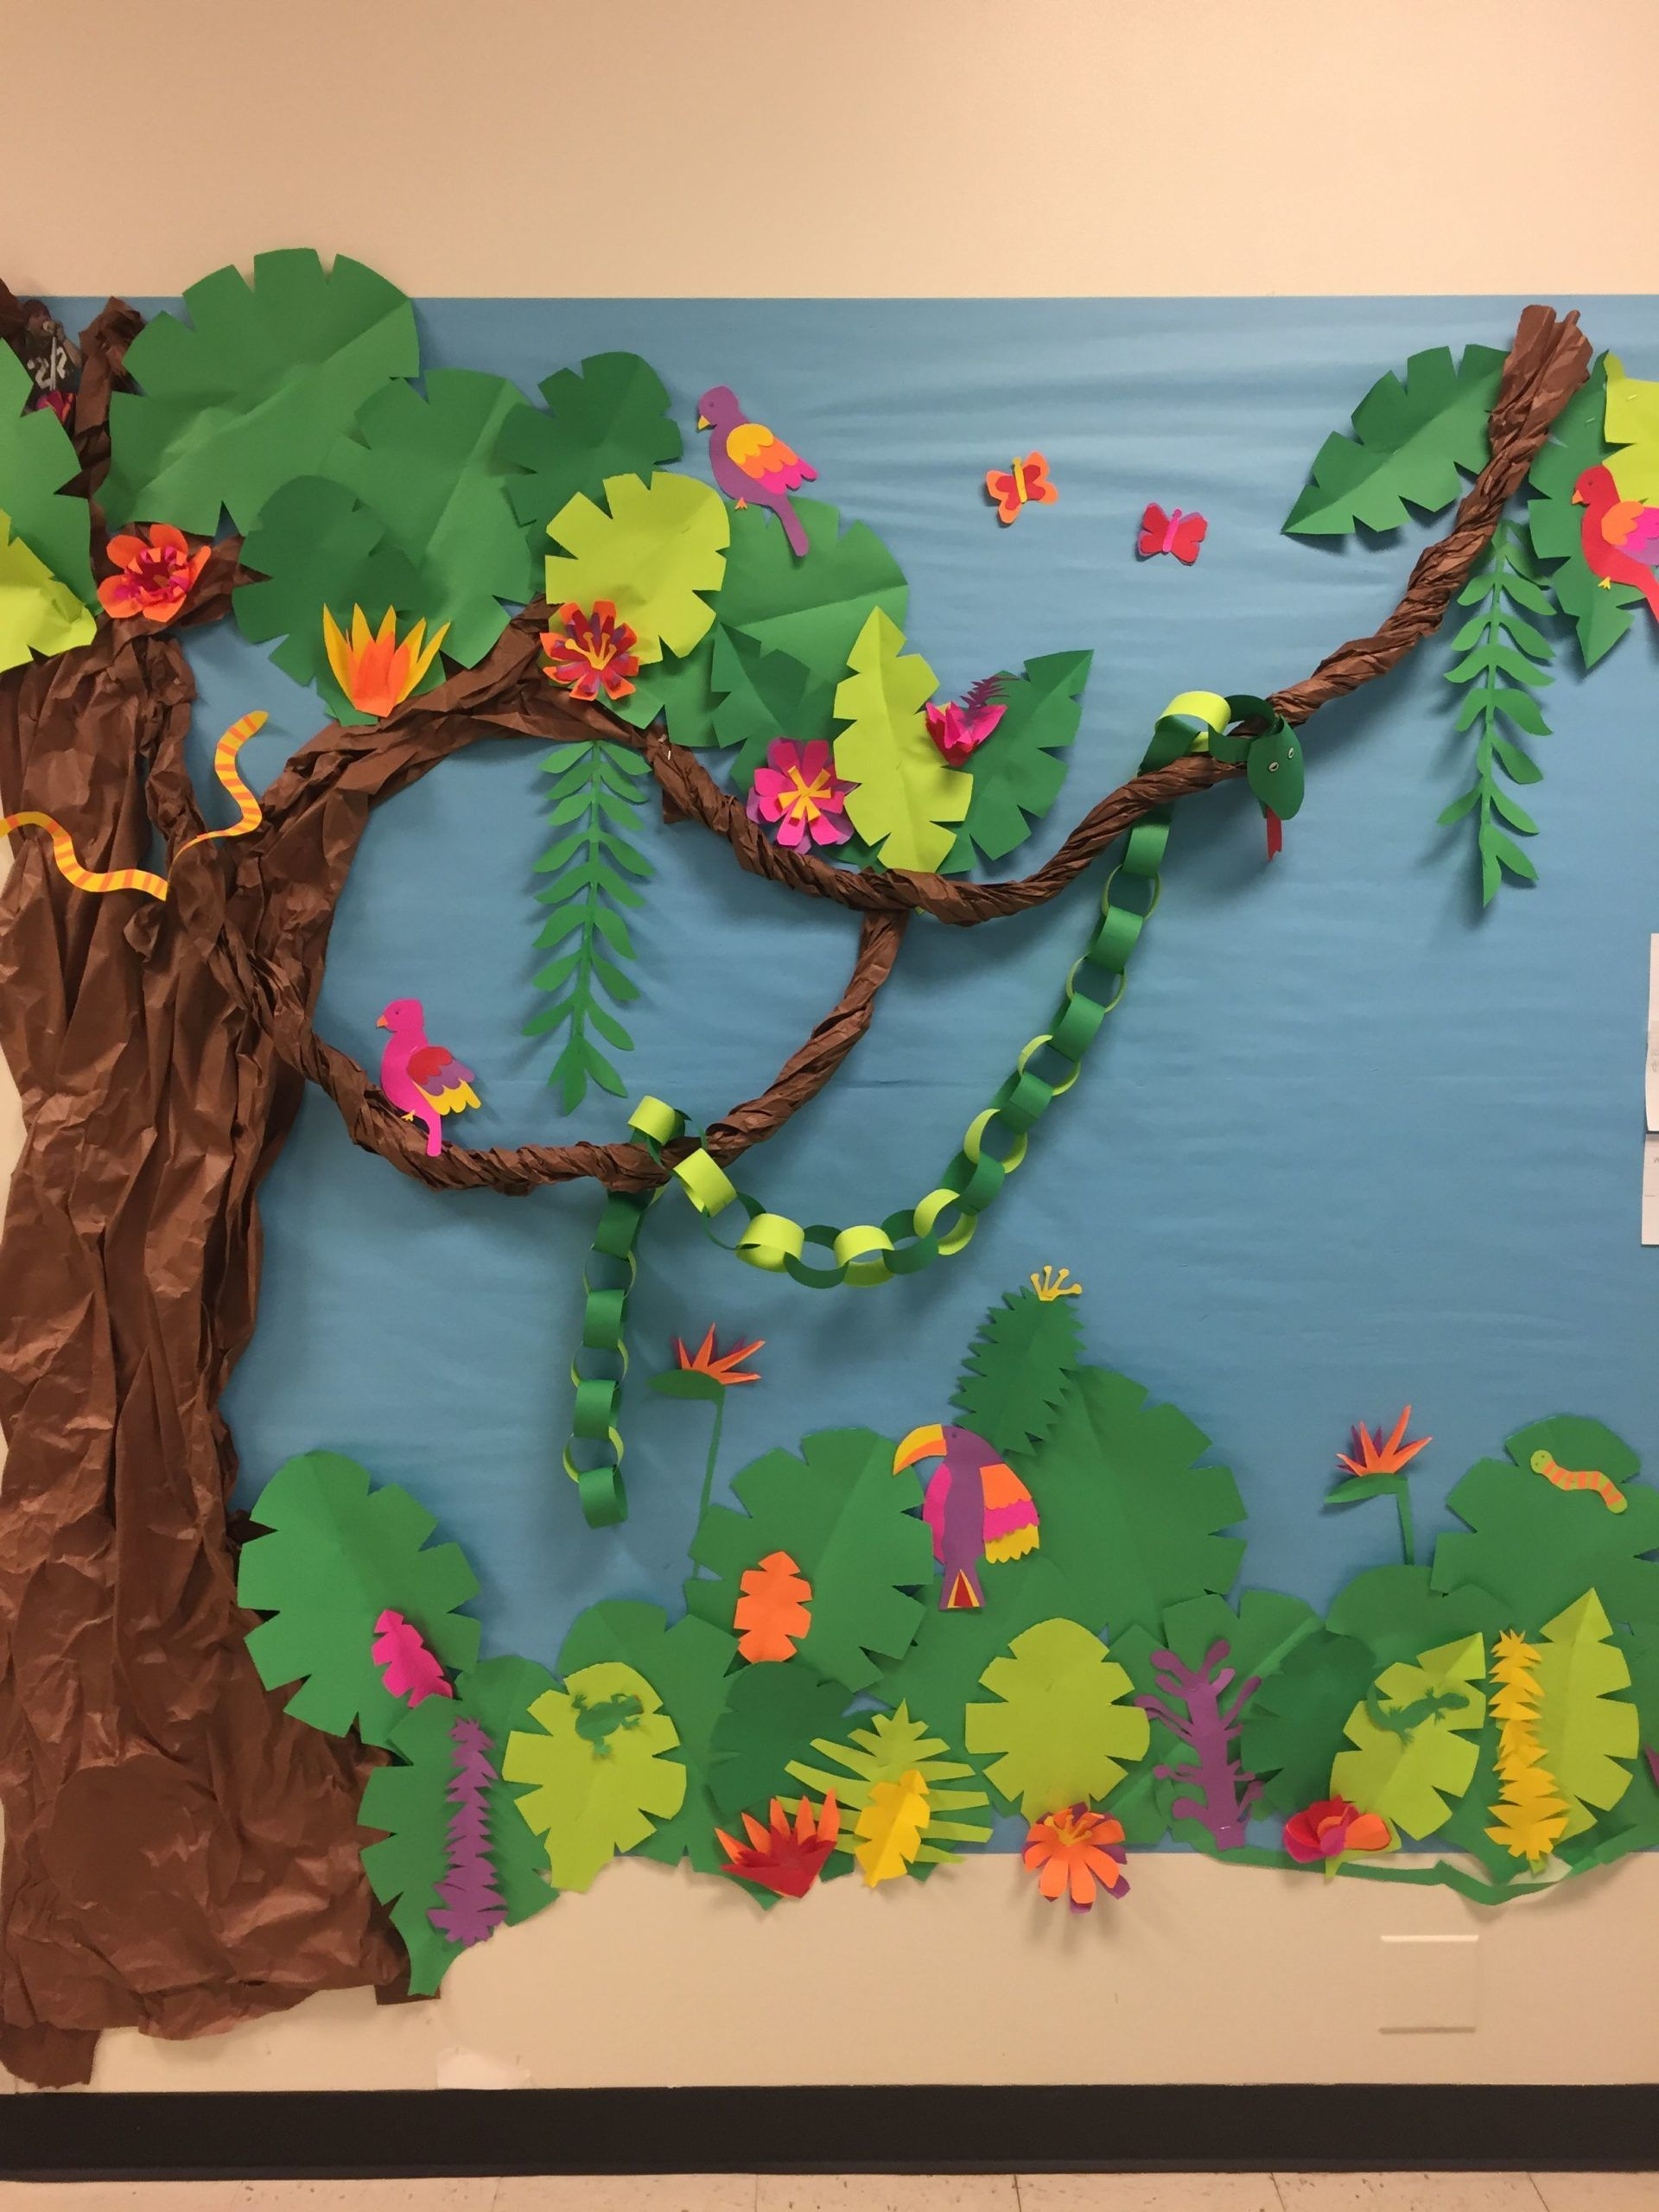 Pin By Mone On Wieland Bookfair Jungle Decorations Rainforest Crafts Jungle Theme Classroom